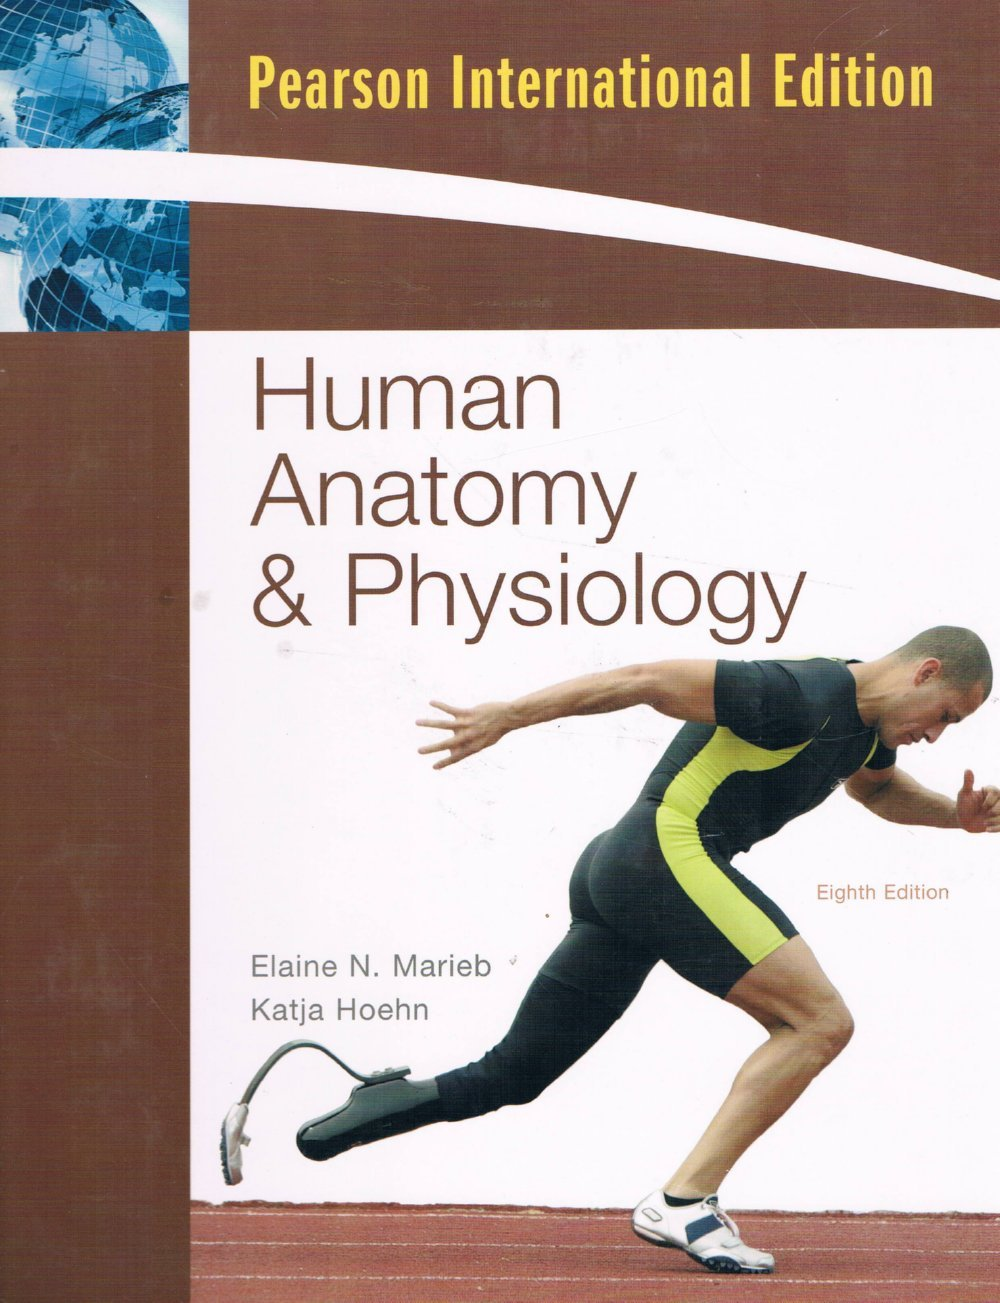 Human Anatomy And Physiology Elaine Marieb Katja Hoehn